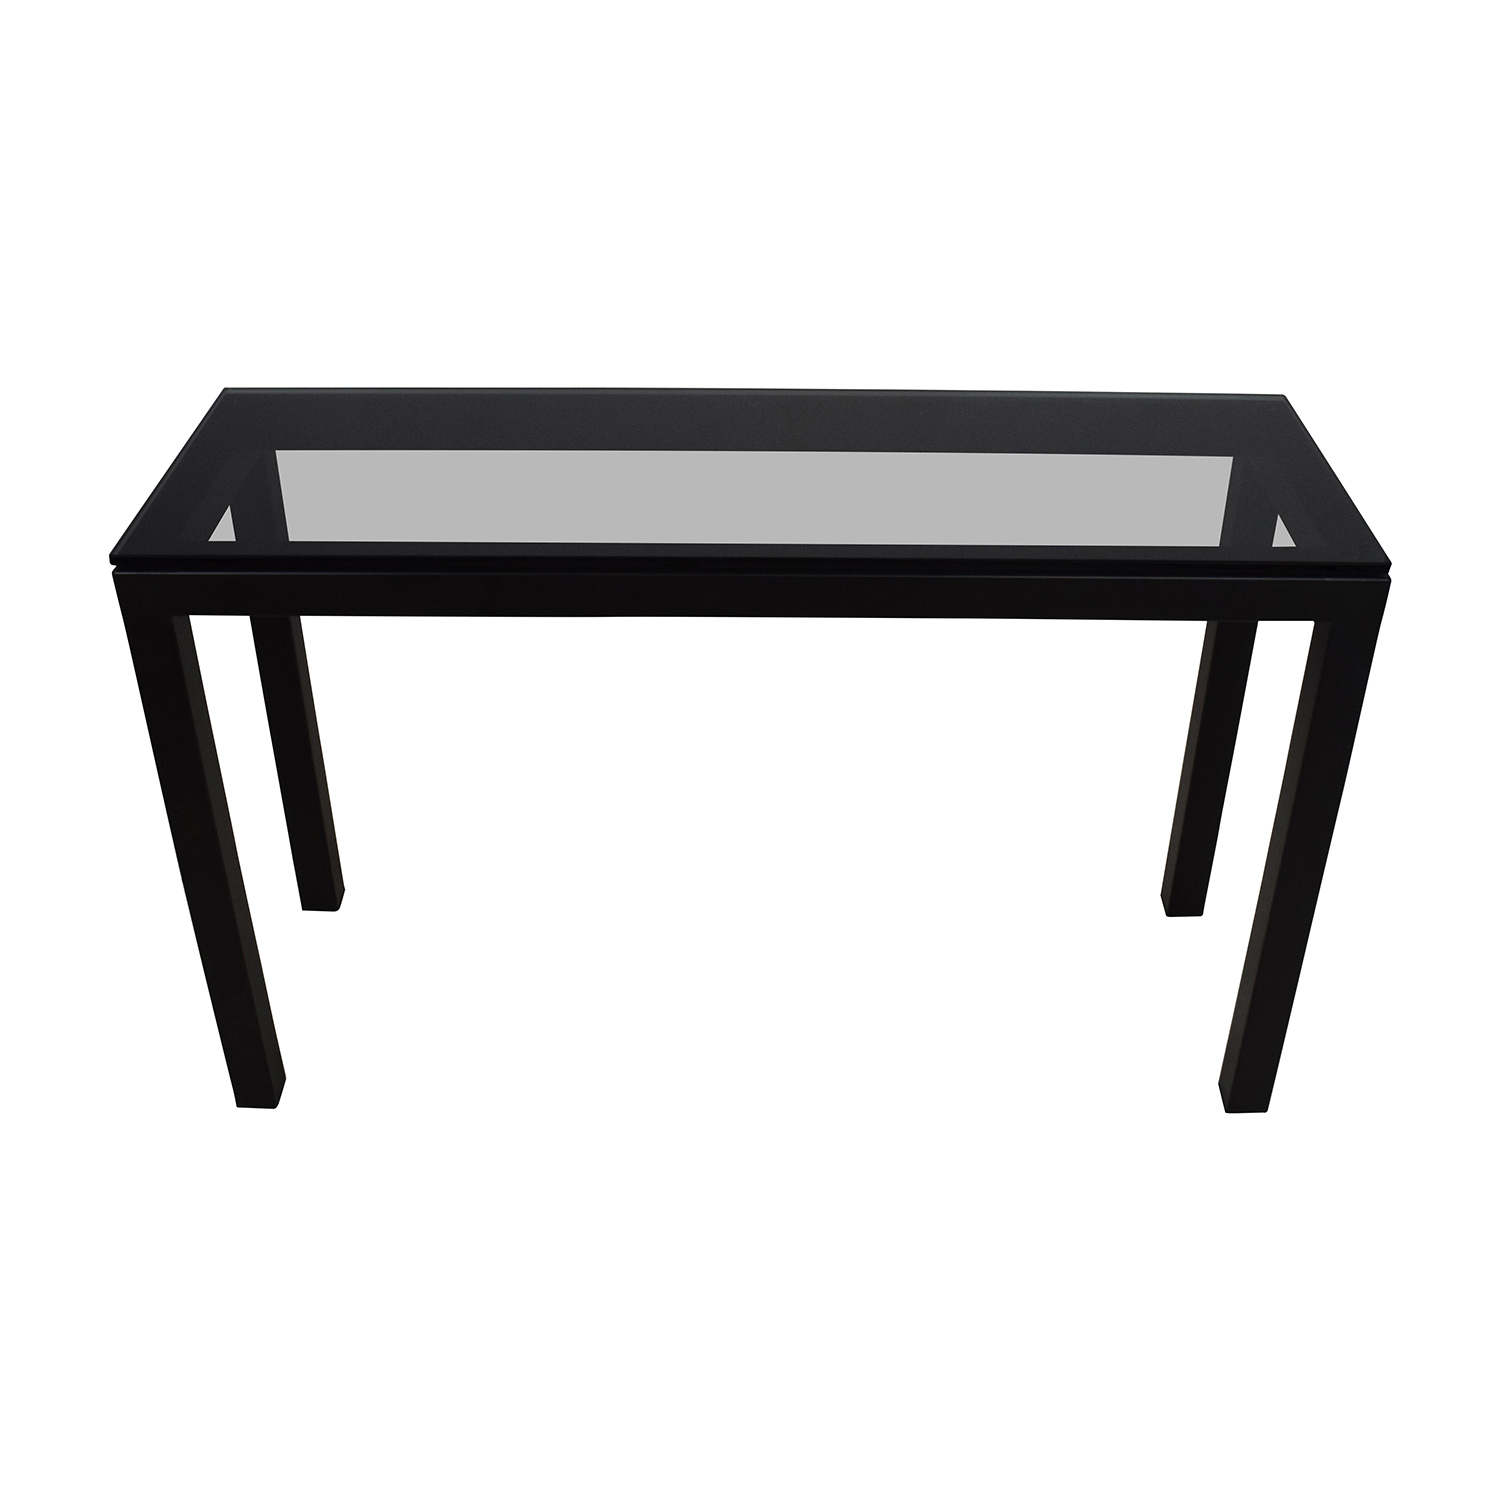 Crate and Barrel Crate & Barrel Parsons Console Table with Clear Glass Top